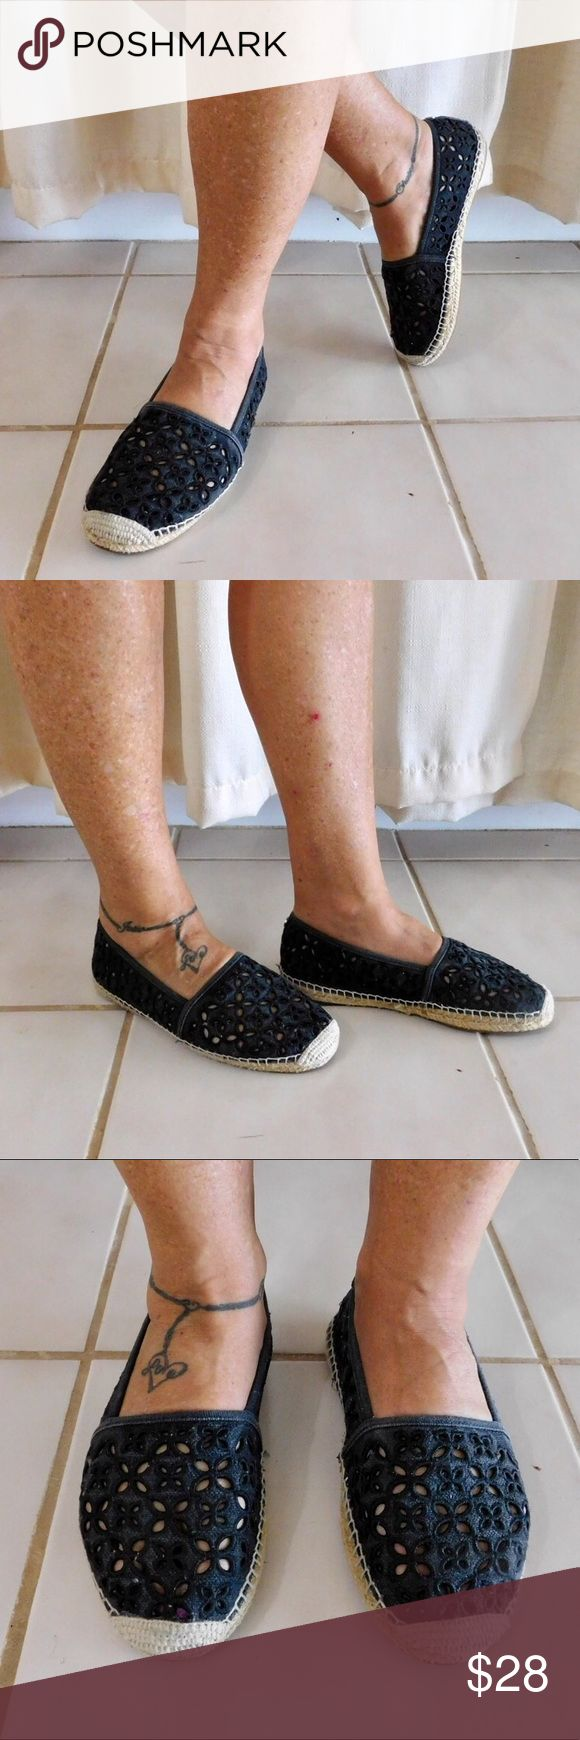 """Michael Kors Cutout Espadrilles In excellent used condition, worn gently. No flaws. Size sticker fell off but I'm pretty sure they're a size 6.5. The style is """"washed denim"""", so they aren't necessarily faded, it's meant to be a """"washed out"""" look. Very comfy and cute for everyday wear! Smoke/pet free home. Ask all questions before buying💓 NO trades!❌🙅🏻 Bundle for a discount!🎉 •more photos coming soon• Michael Kors Shoes Espadrilles"""